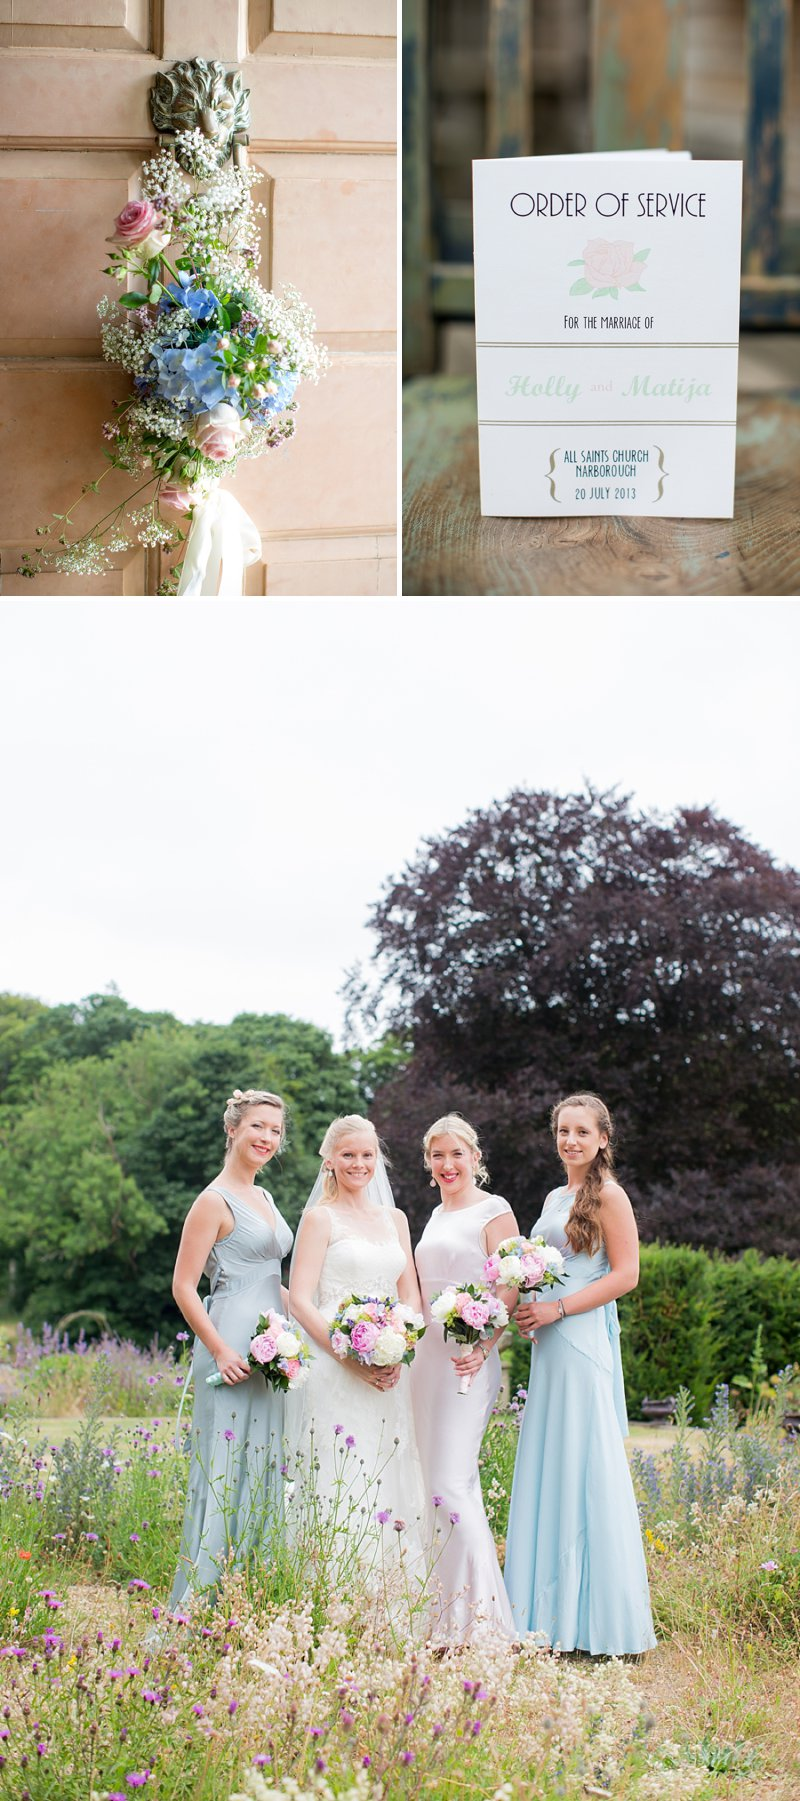 Elegant Country Garden Wedding At Narborough Hall Gardens In Norfolk With Bride In Pronovias Gown And Groom In Reiss Suit With Bridesmaids In Pastel Tone Ghost Dresses And Images From Katherine Ashdown 2